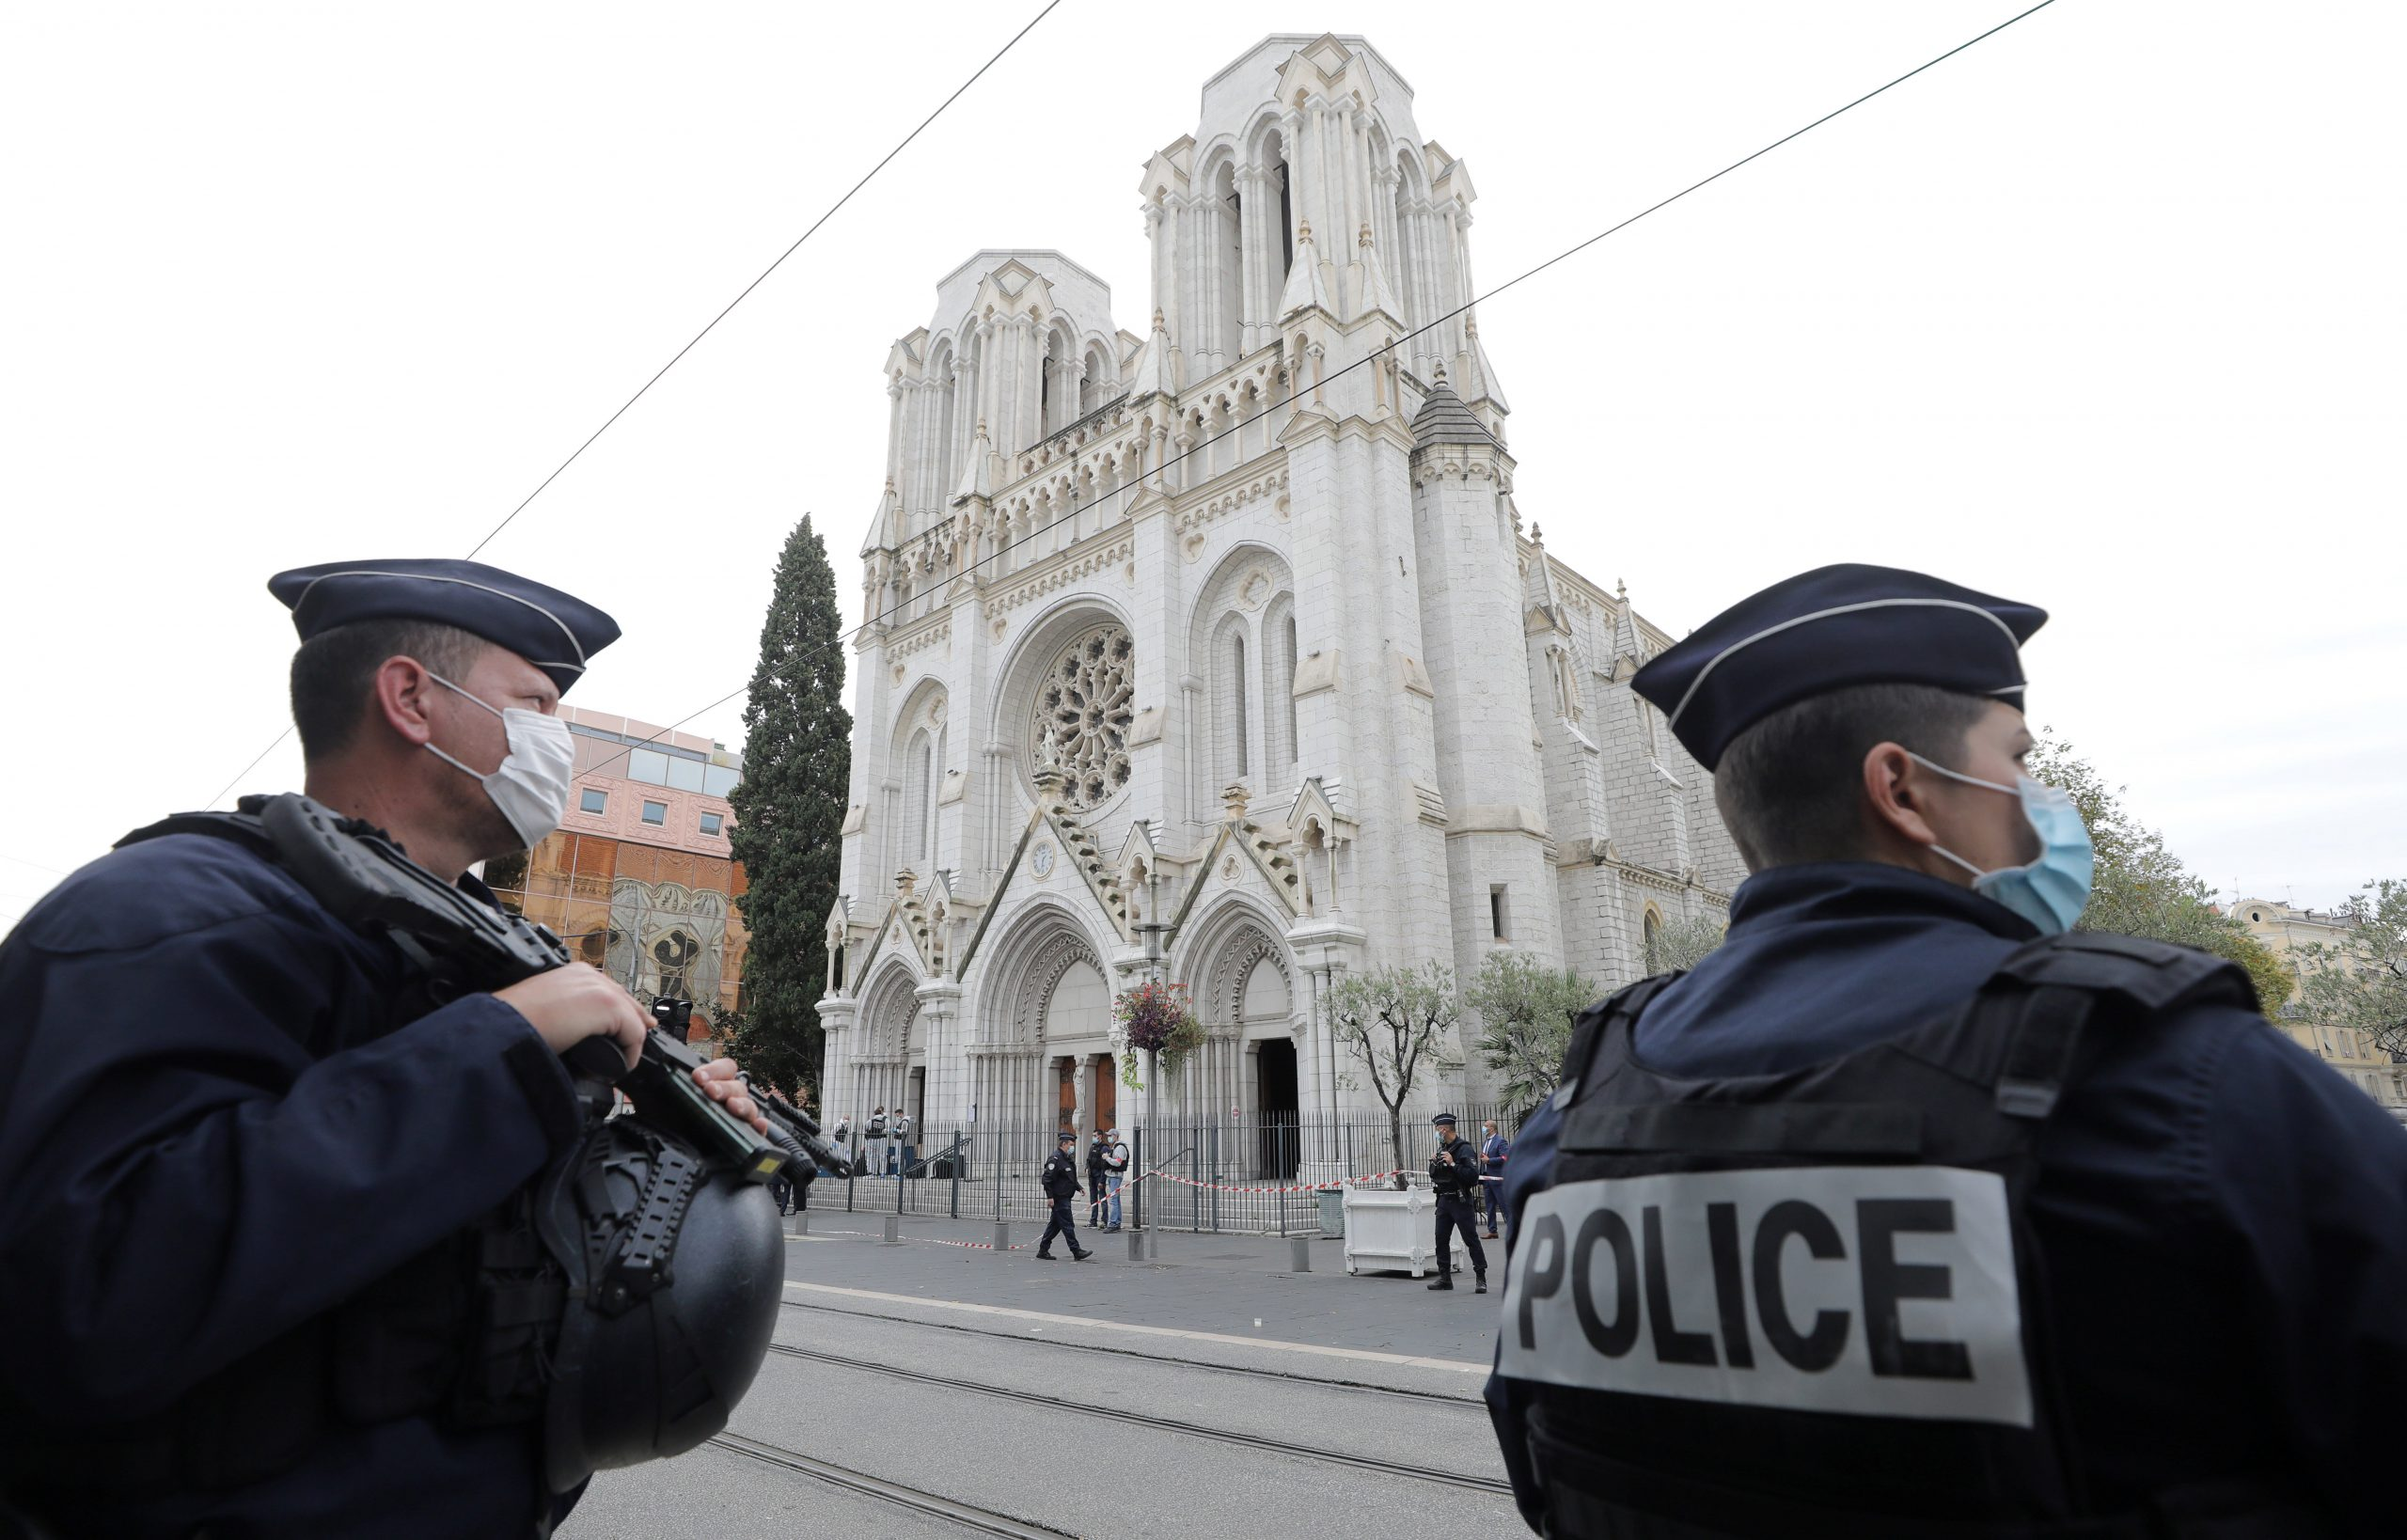 Orbán Expresses Condolences after Nice Church Attack